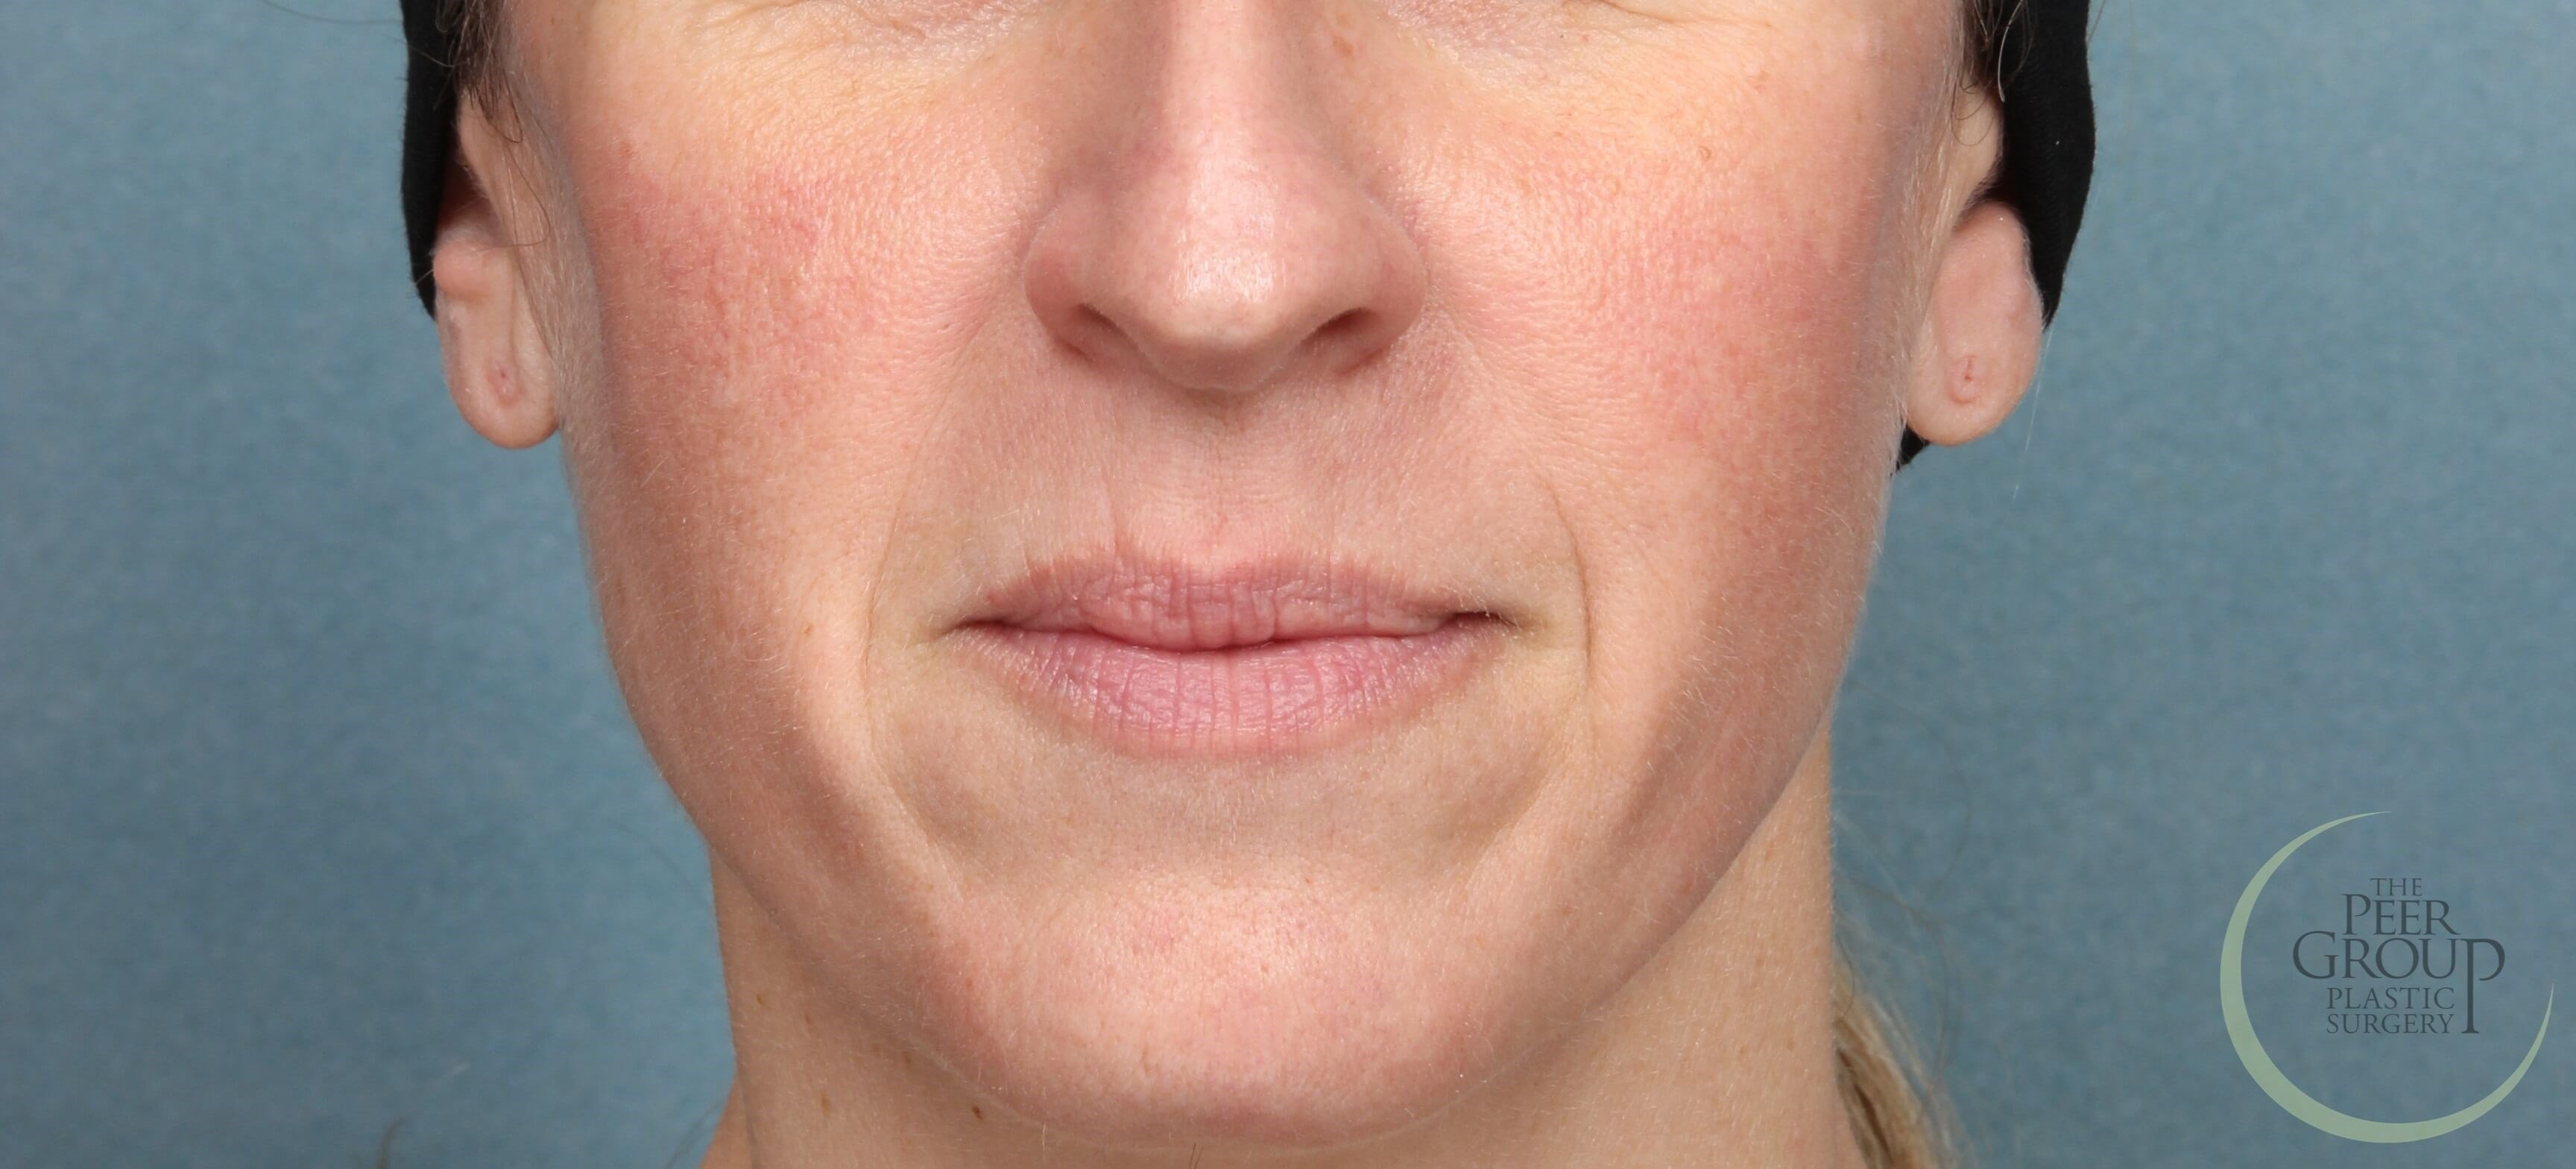 NJ Juvederm for Smile Lines Before Juvederm